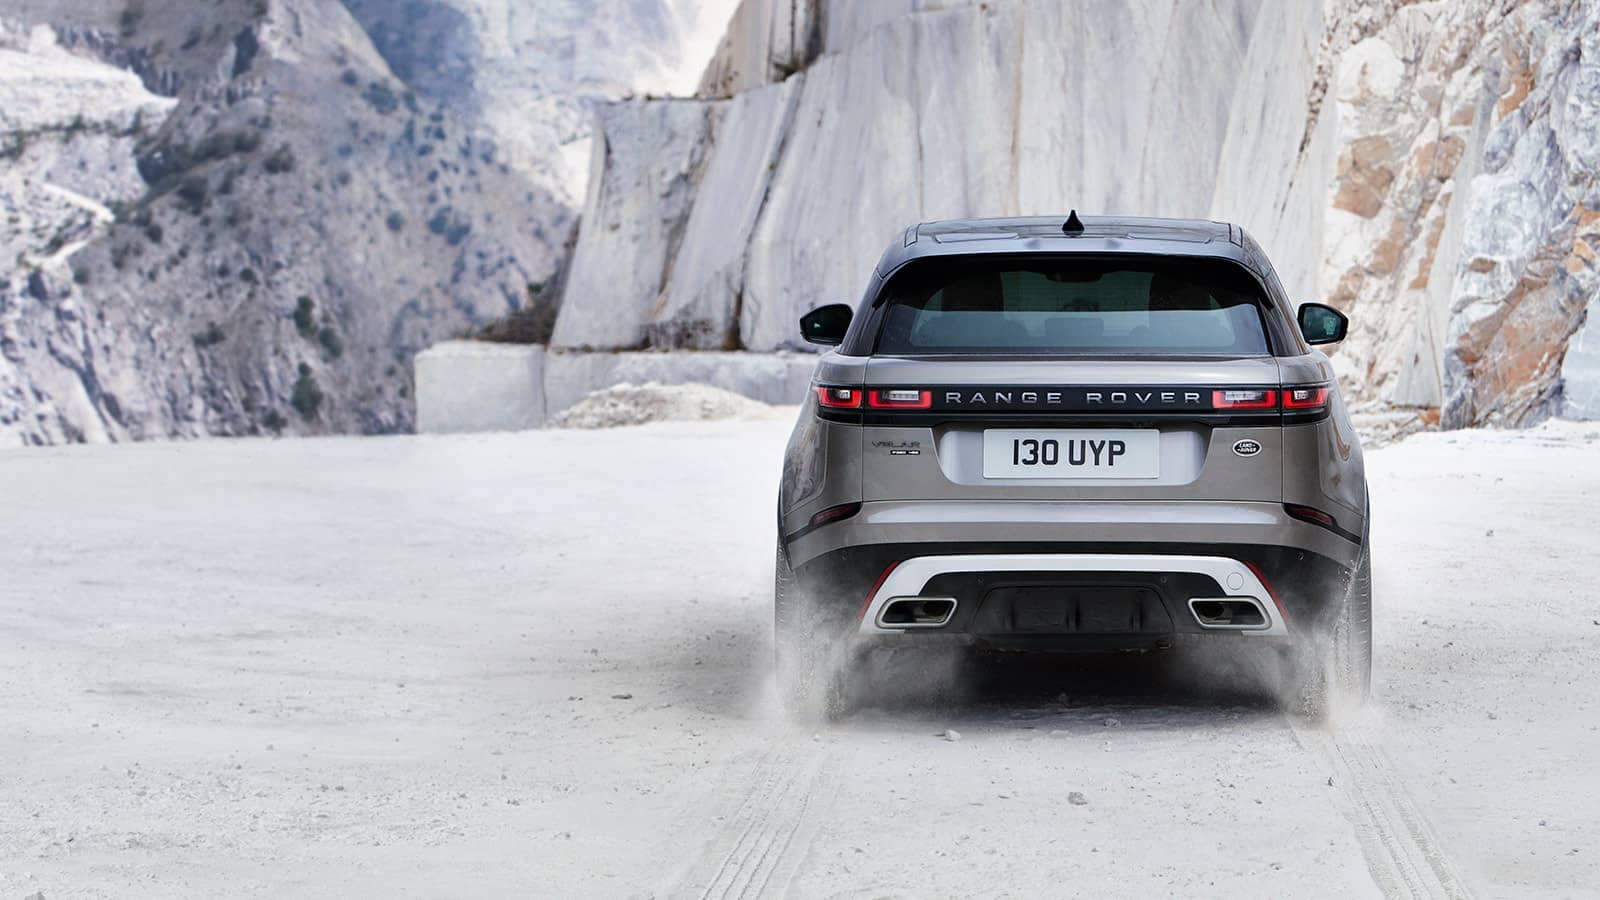 2019 Land Rover Range Rover Velar rear view